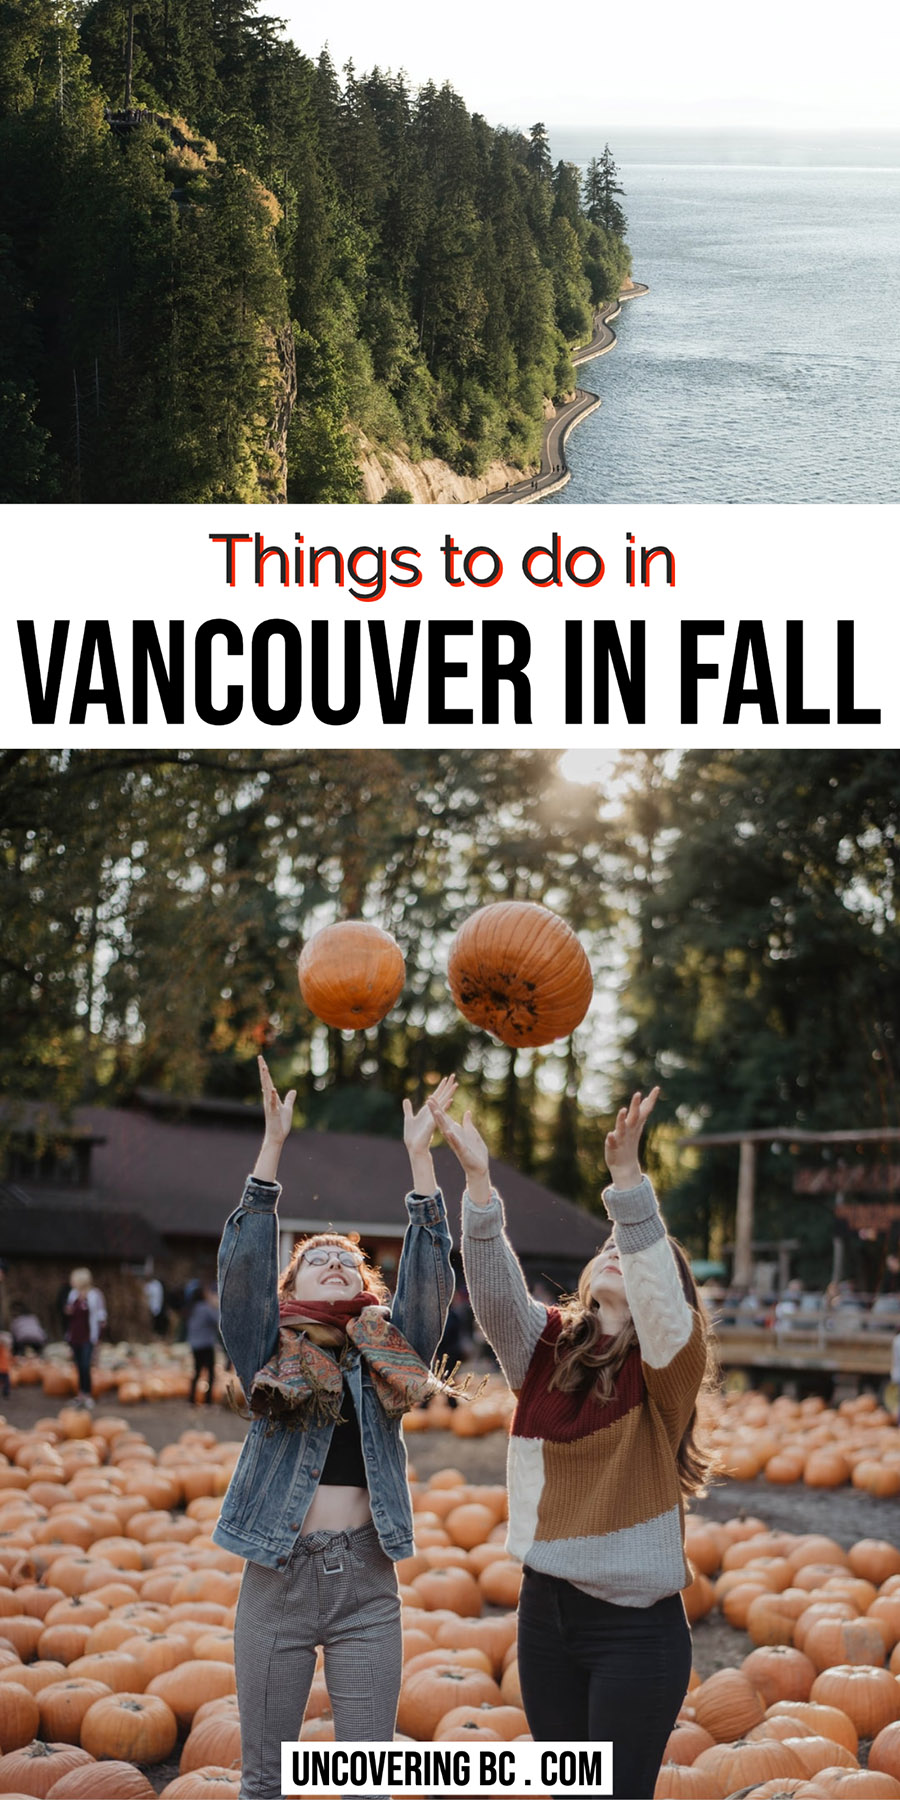 Things to do in Vancouver in October